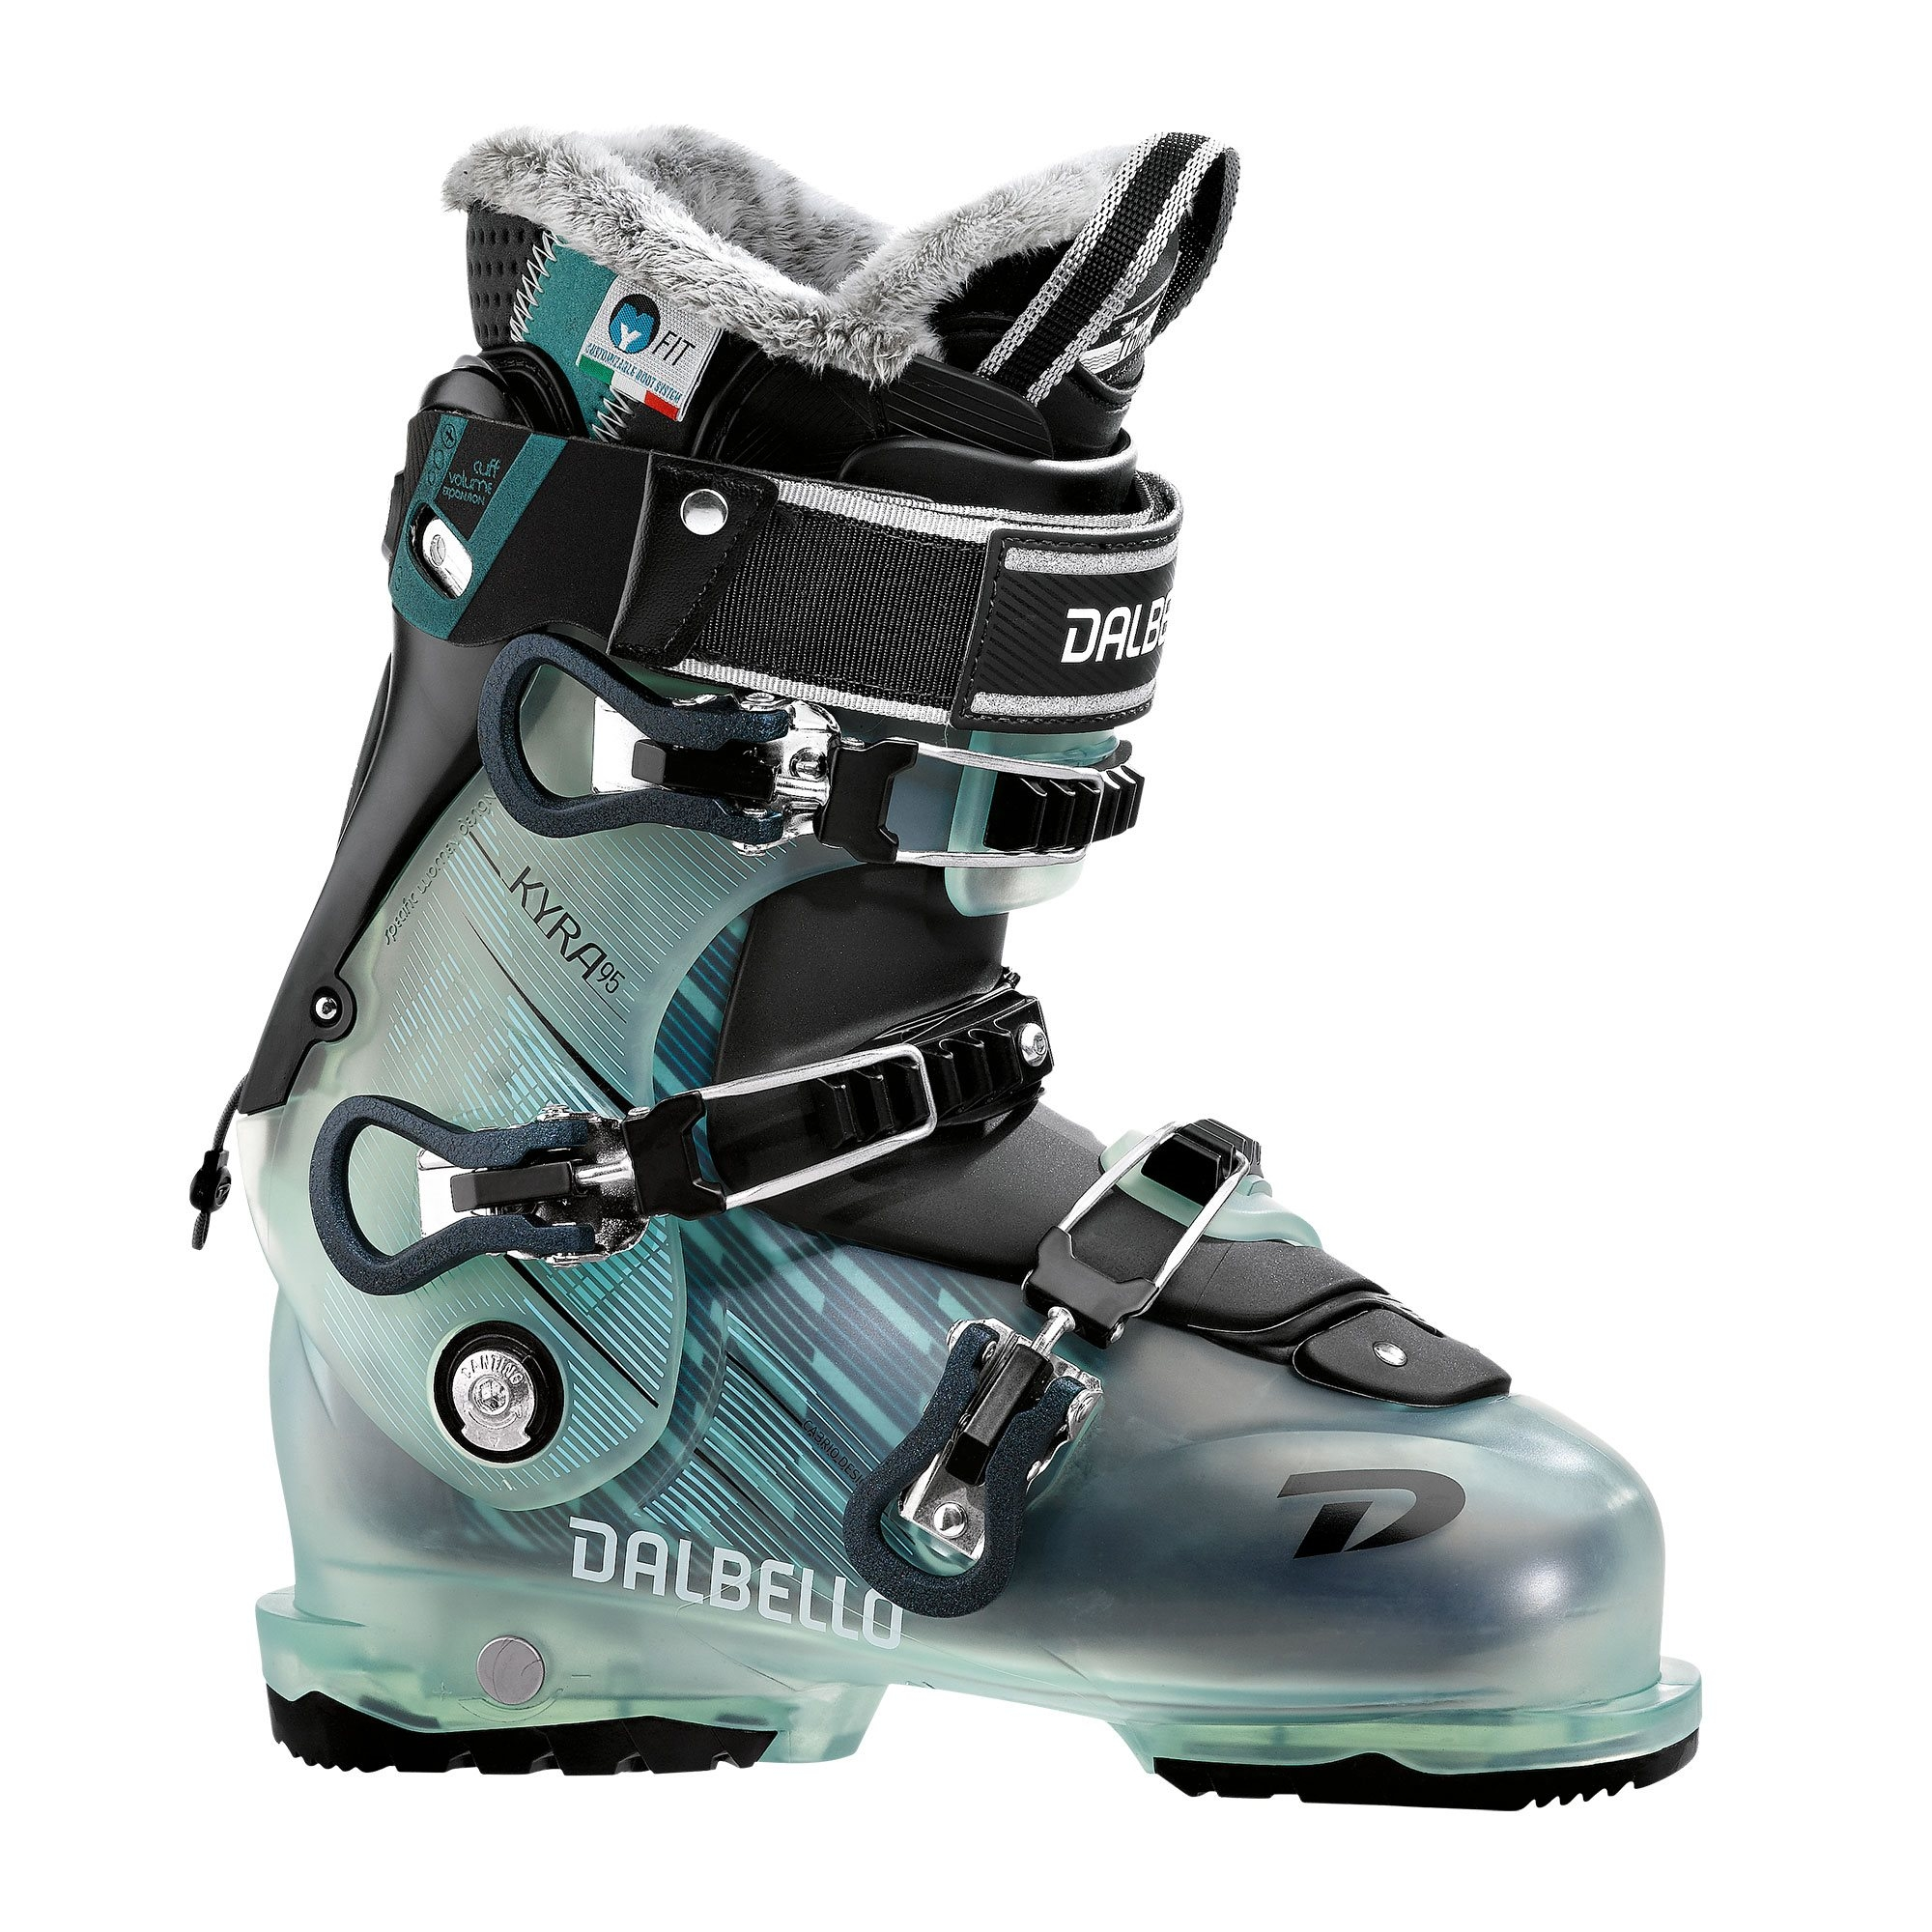 46c075452b1 Dalbello Kyra 95 Ski Boot Glacier Blue Black 2018